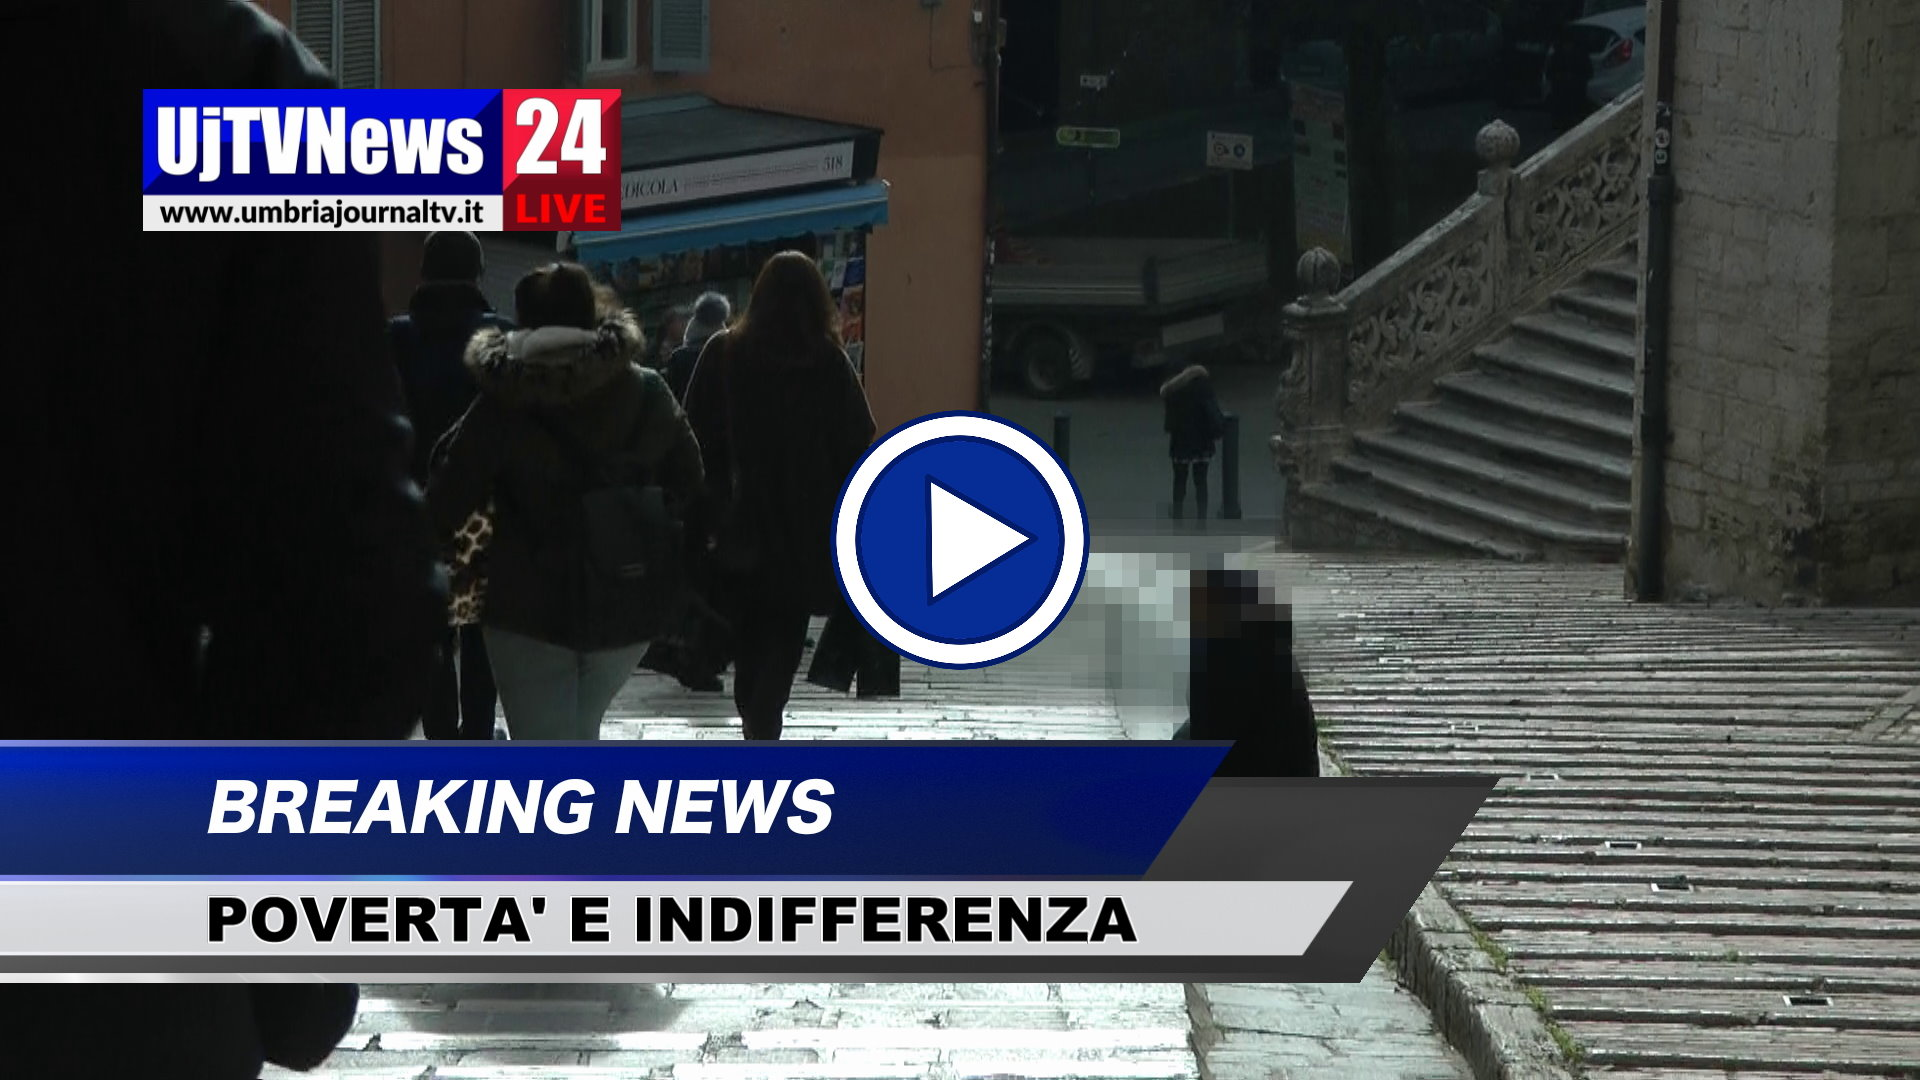 Povertà, in ginocchio a chiedere elemosina, davanti a lei indifferenza VIDEO